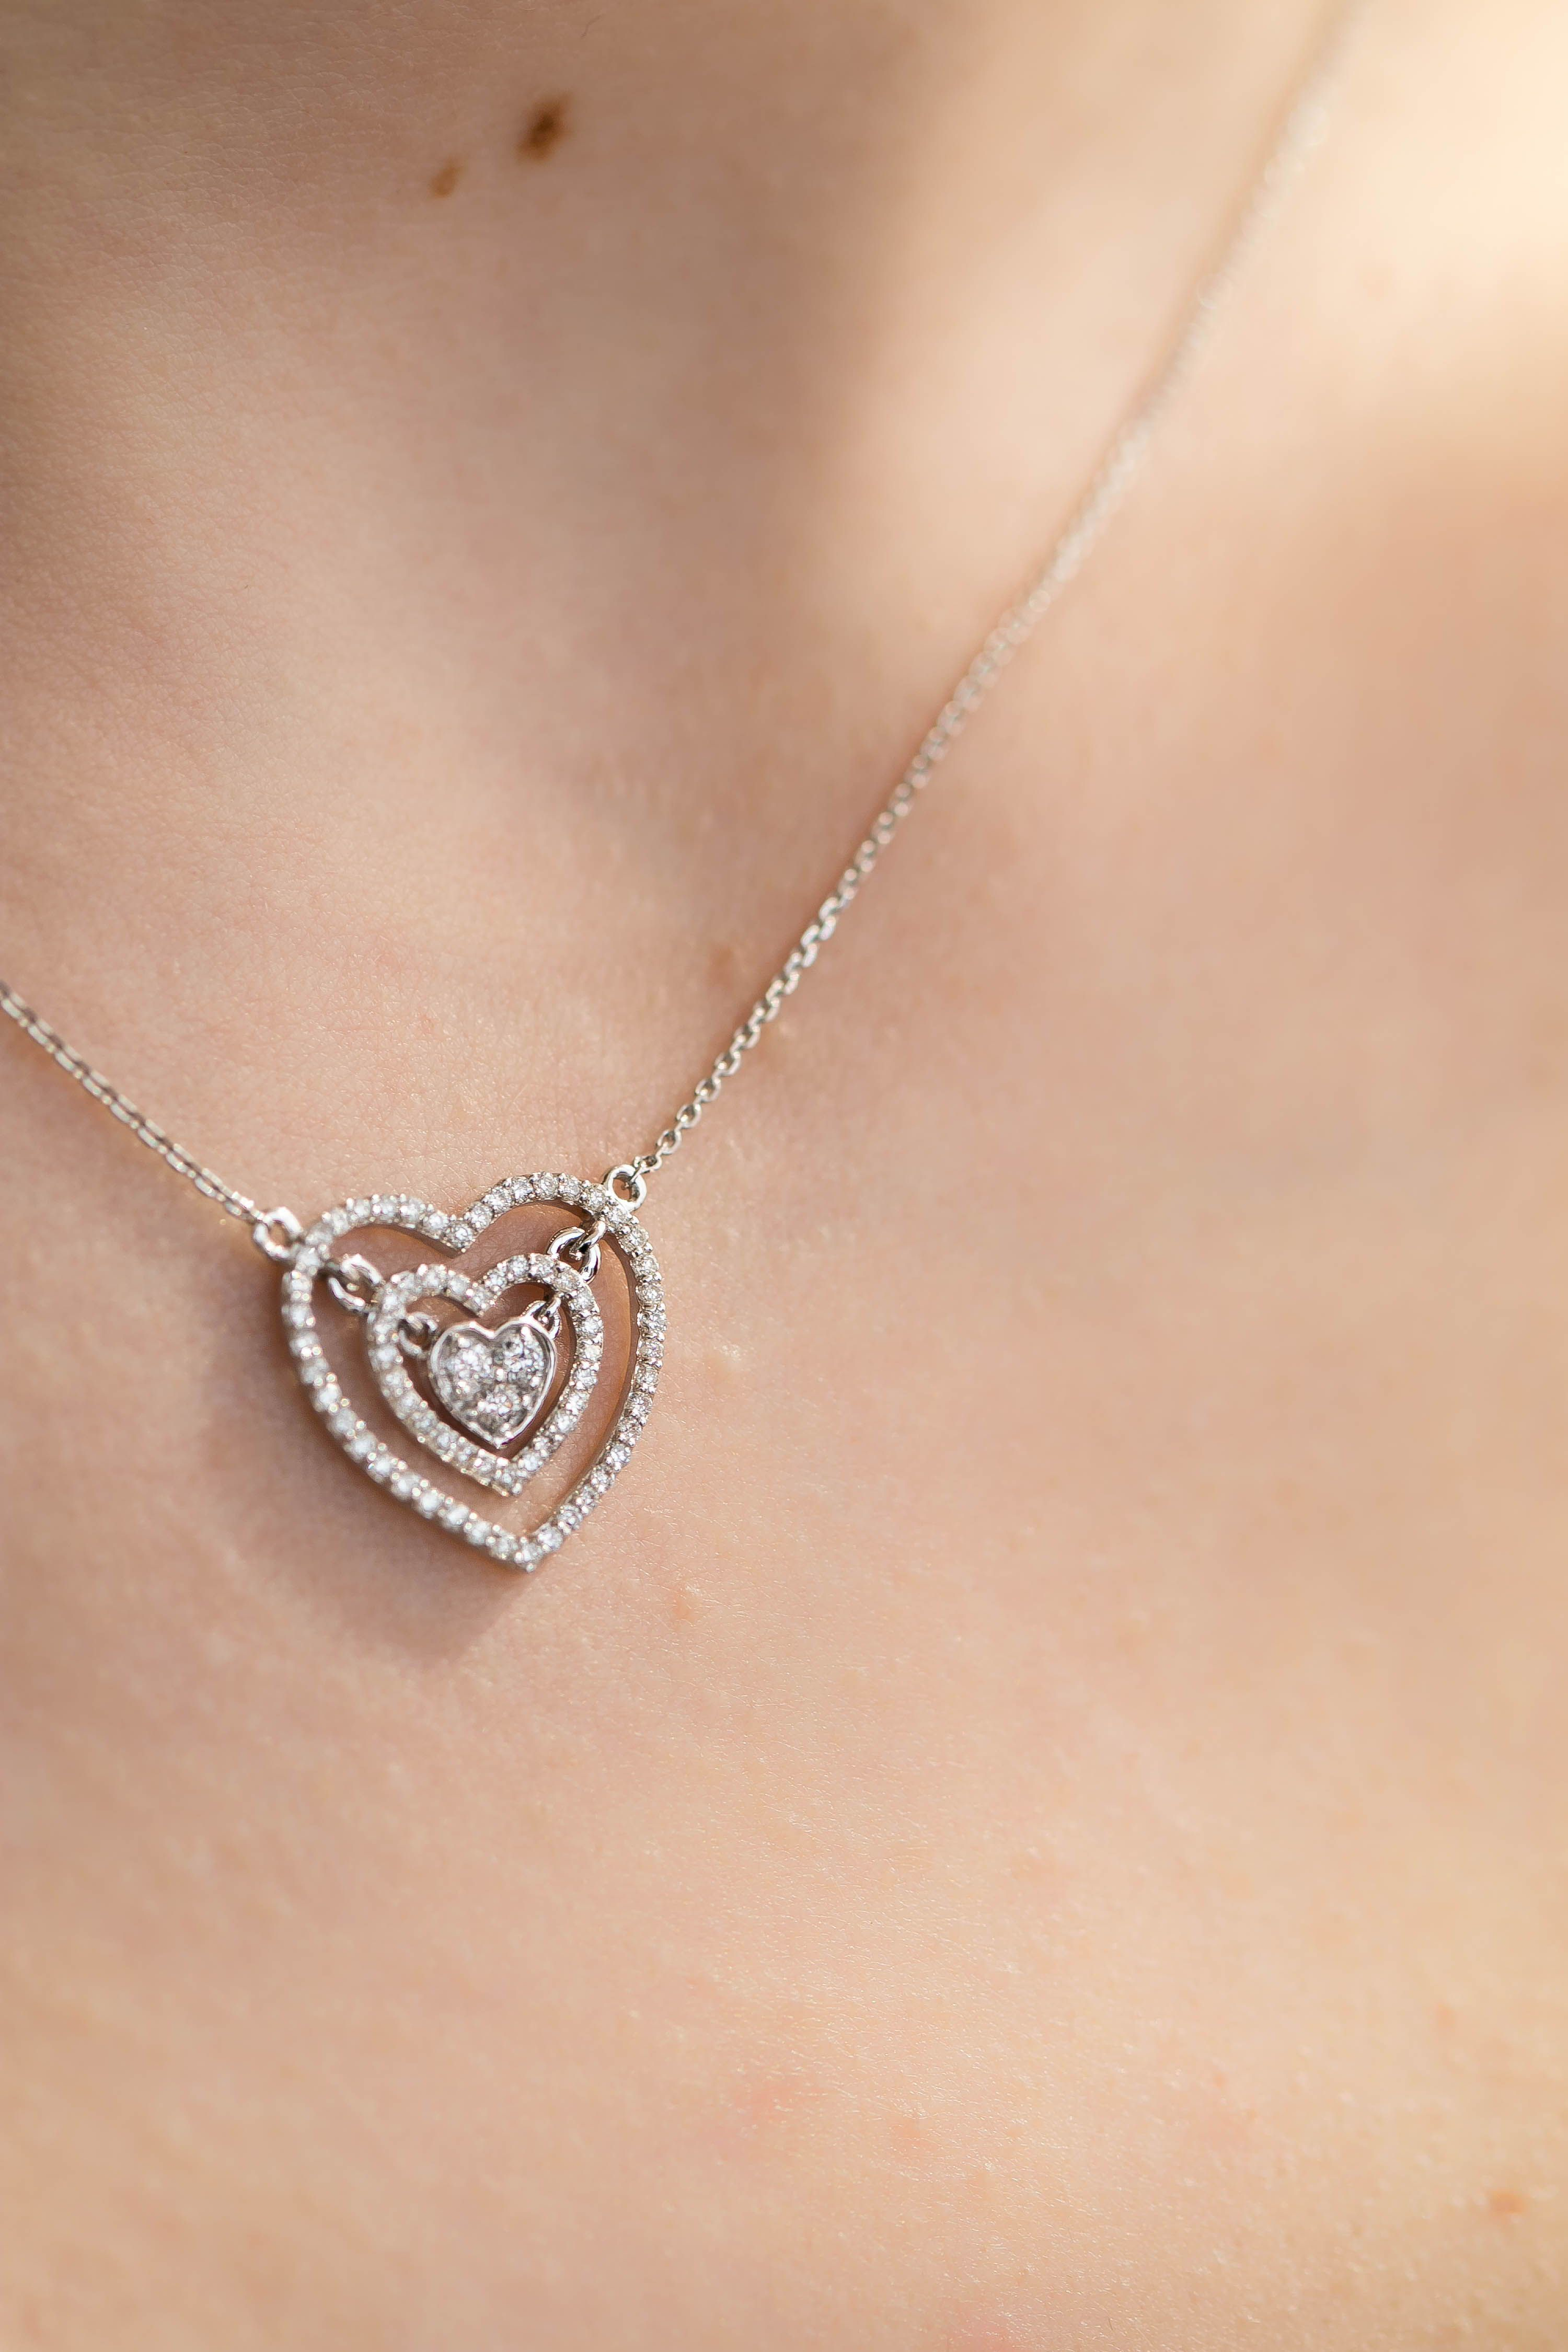 1 3 Ctw Round Diamond Double Halo Cluster Heart Pendant Necklace In 18k White Gold Mdr190019 Heart Pendant Diamond Heart Pendant Gold 18k White Gold Chain